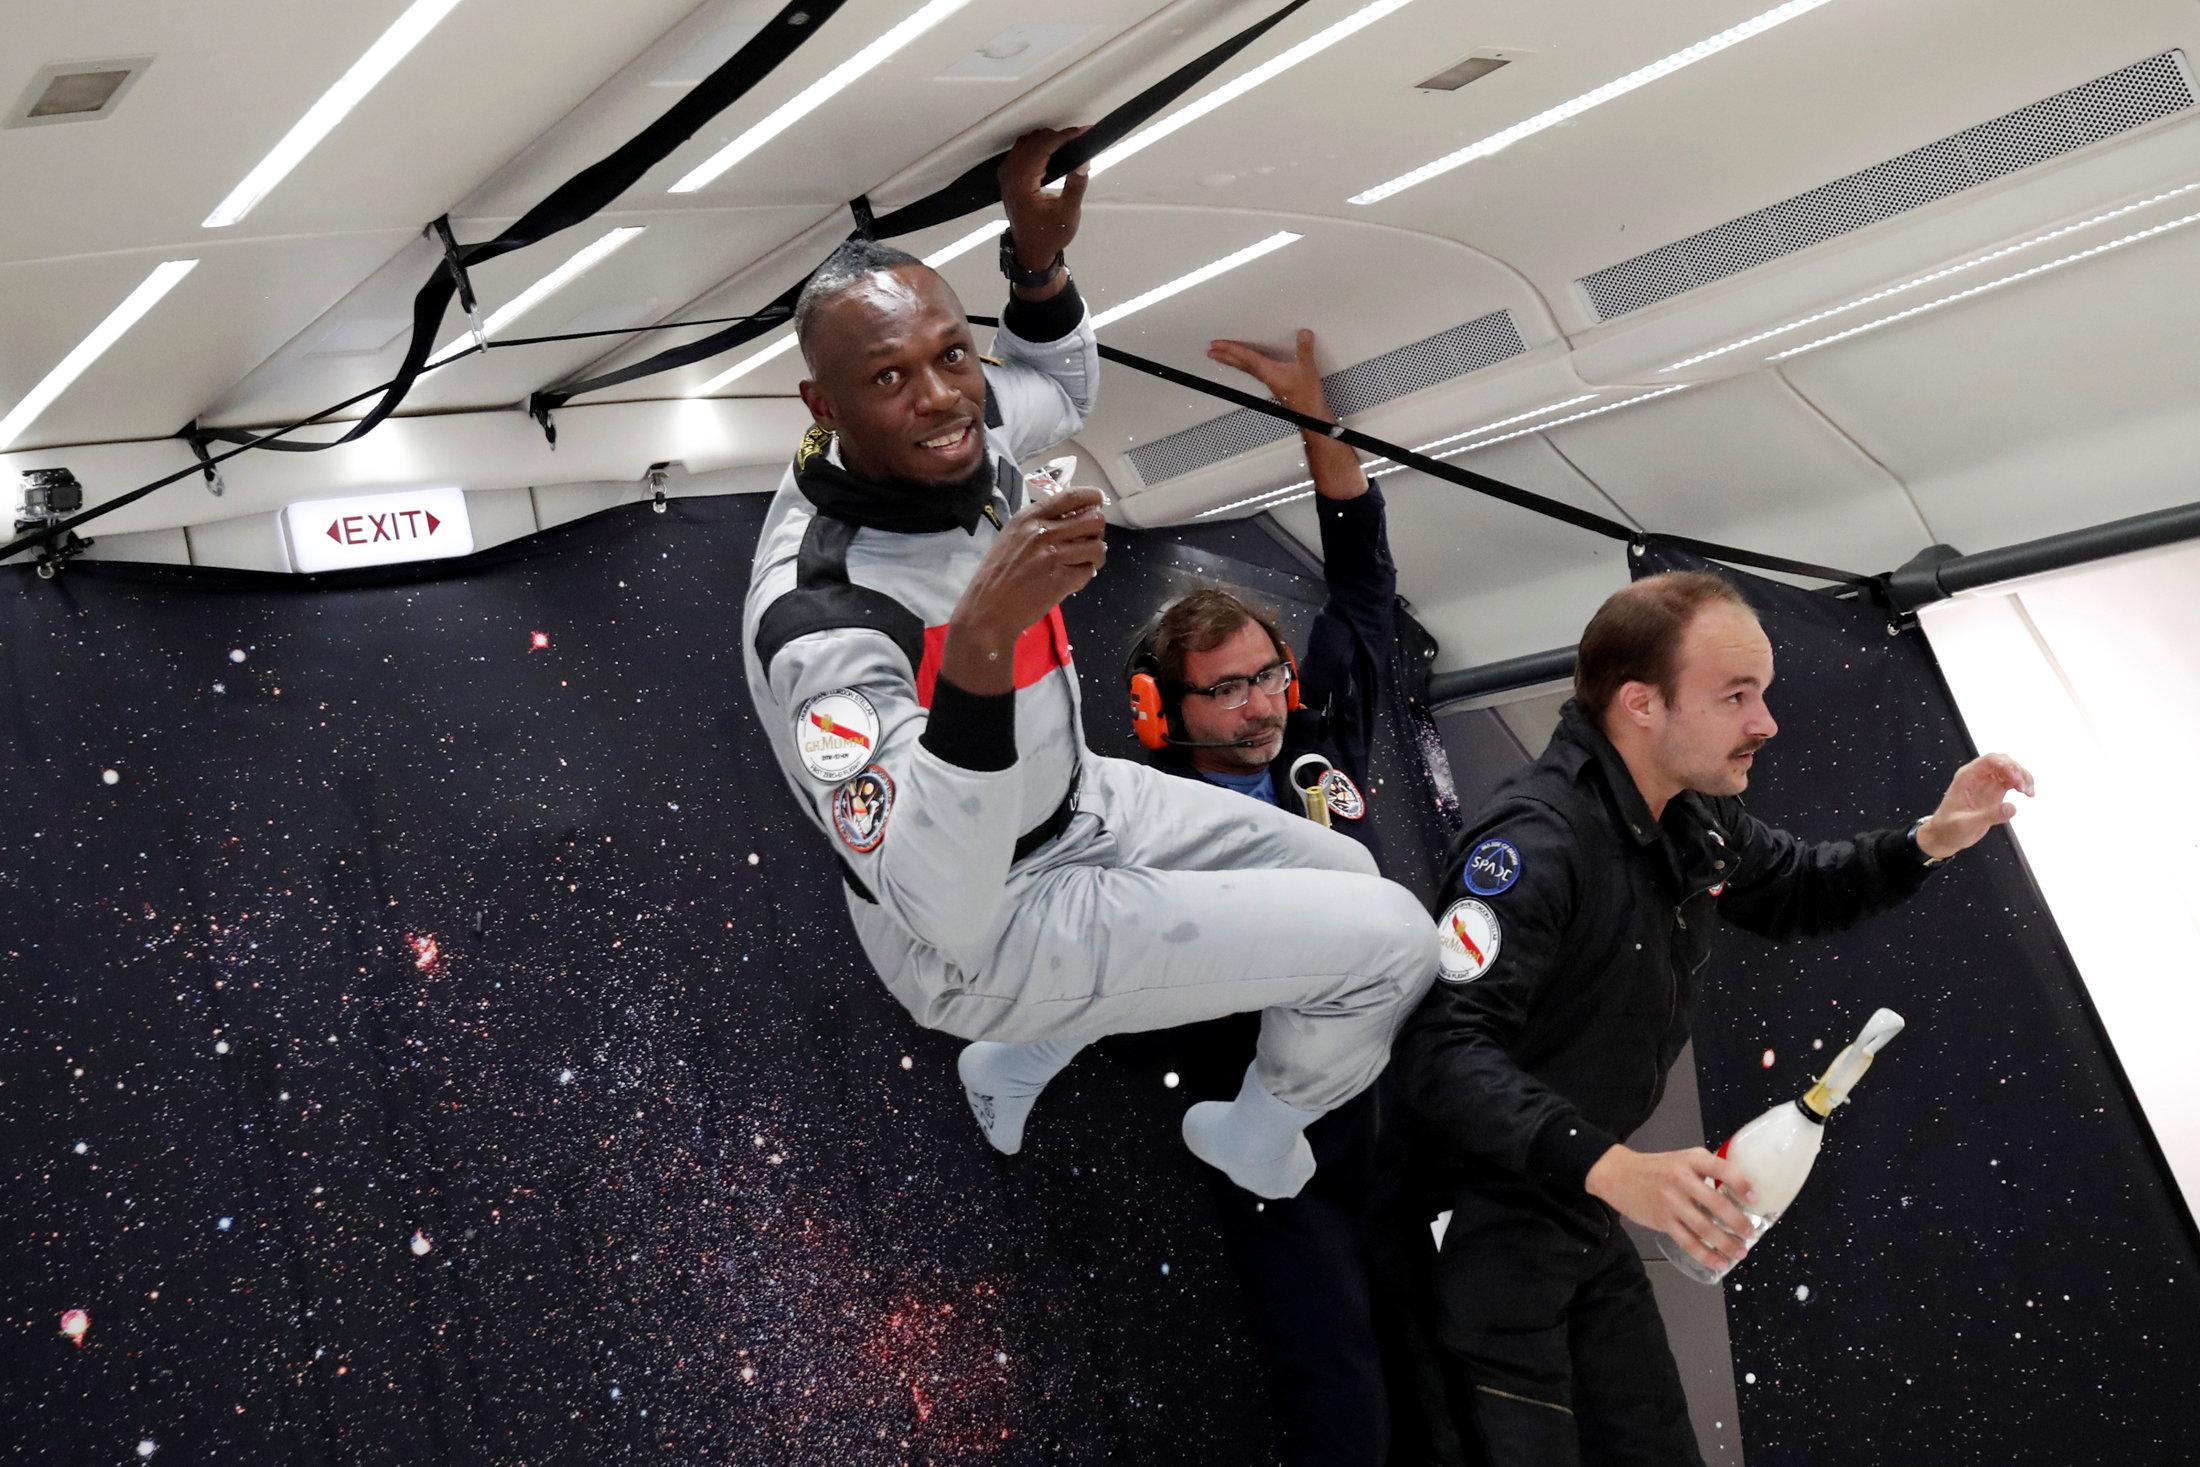 Olympic legend Usain Bolt has time to take it all in as he enjoys the high life